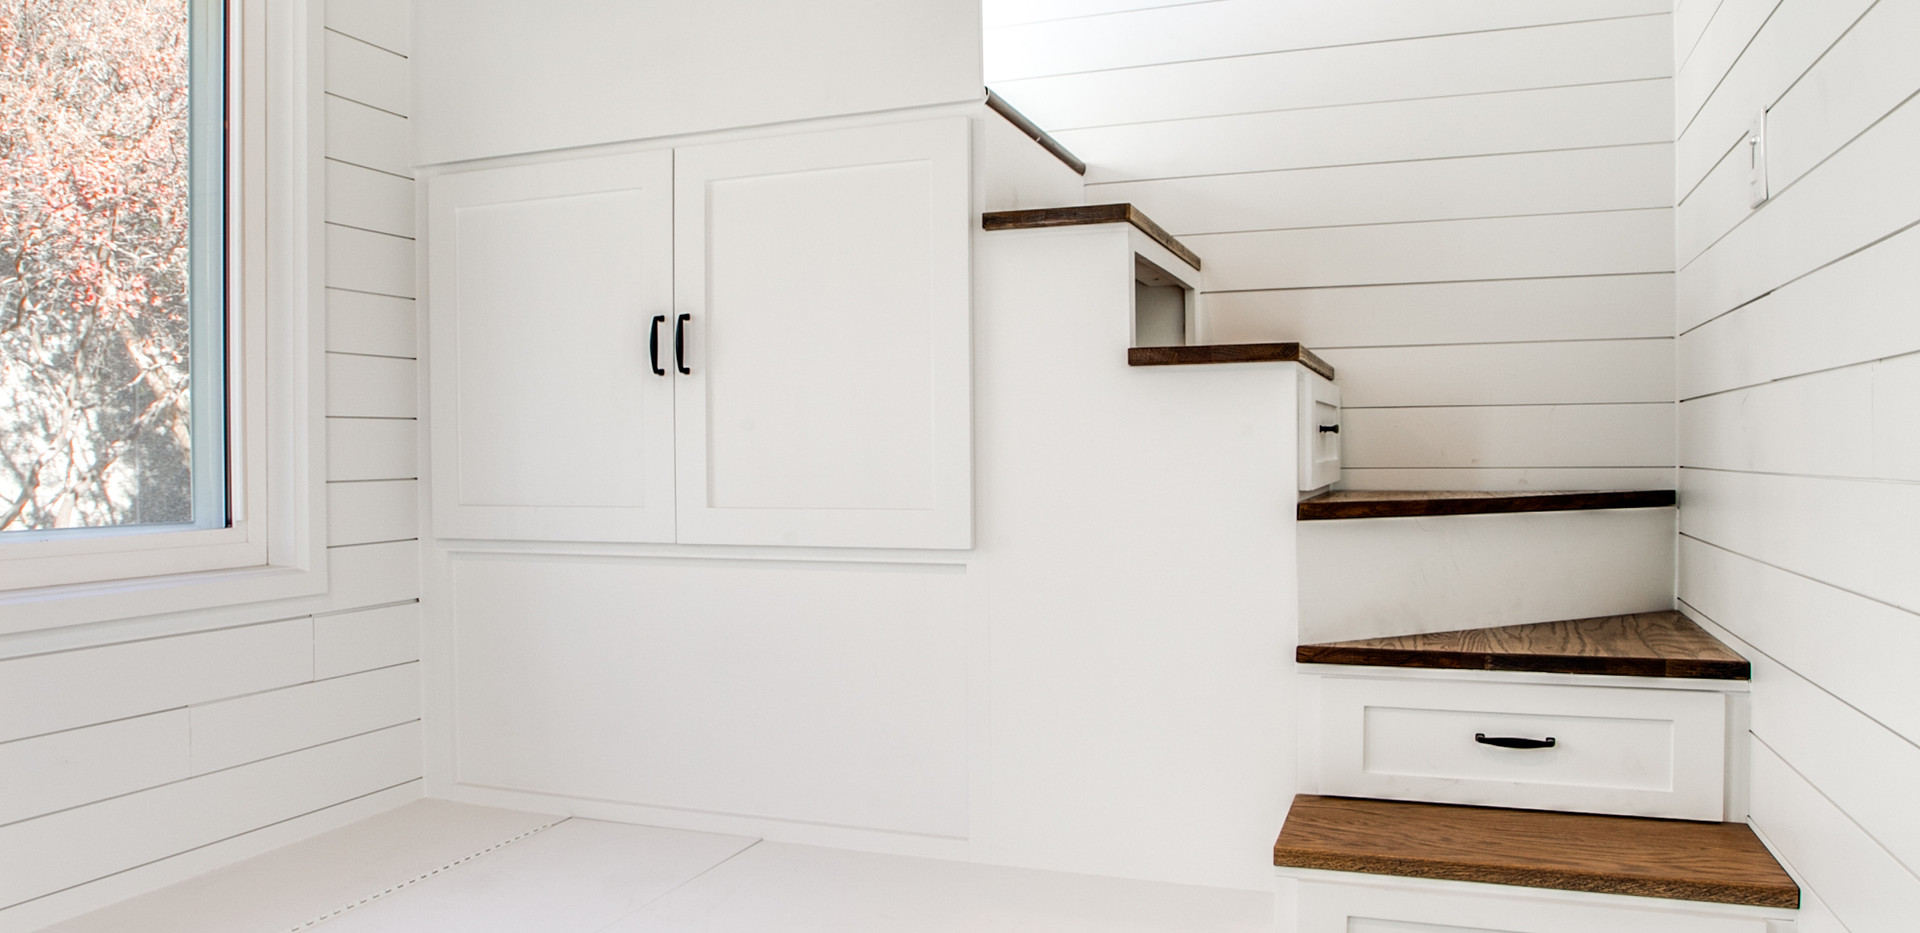 Second storage staircase leads to the second loft